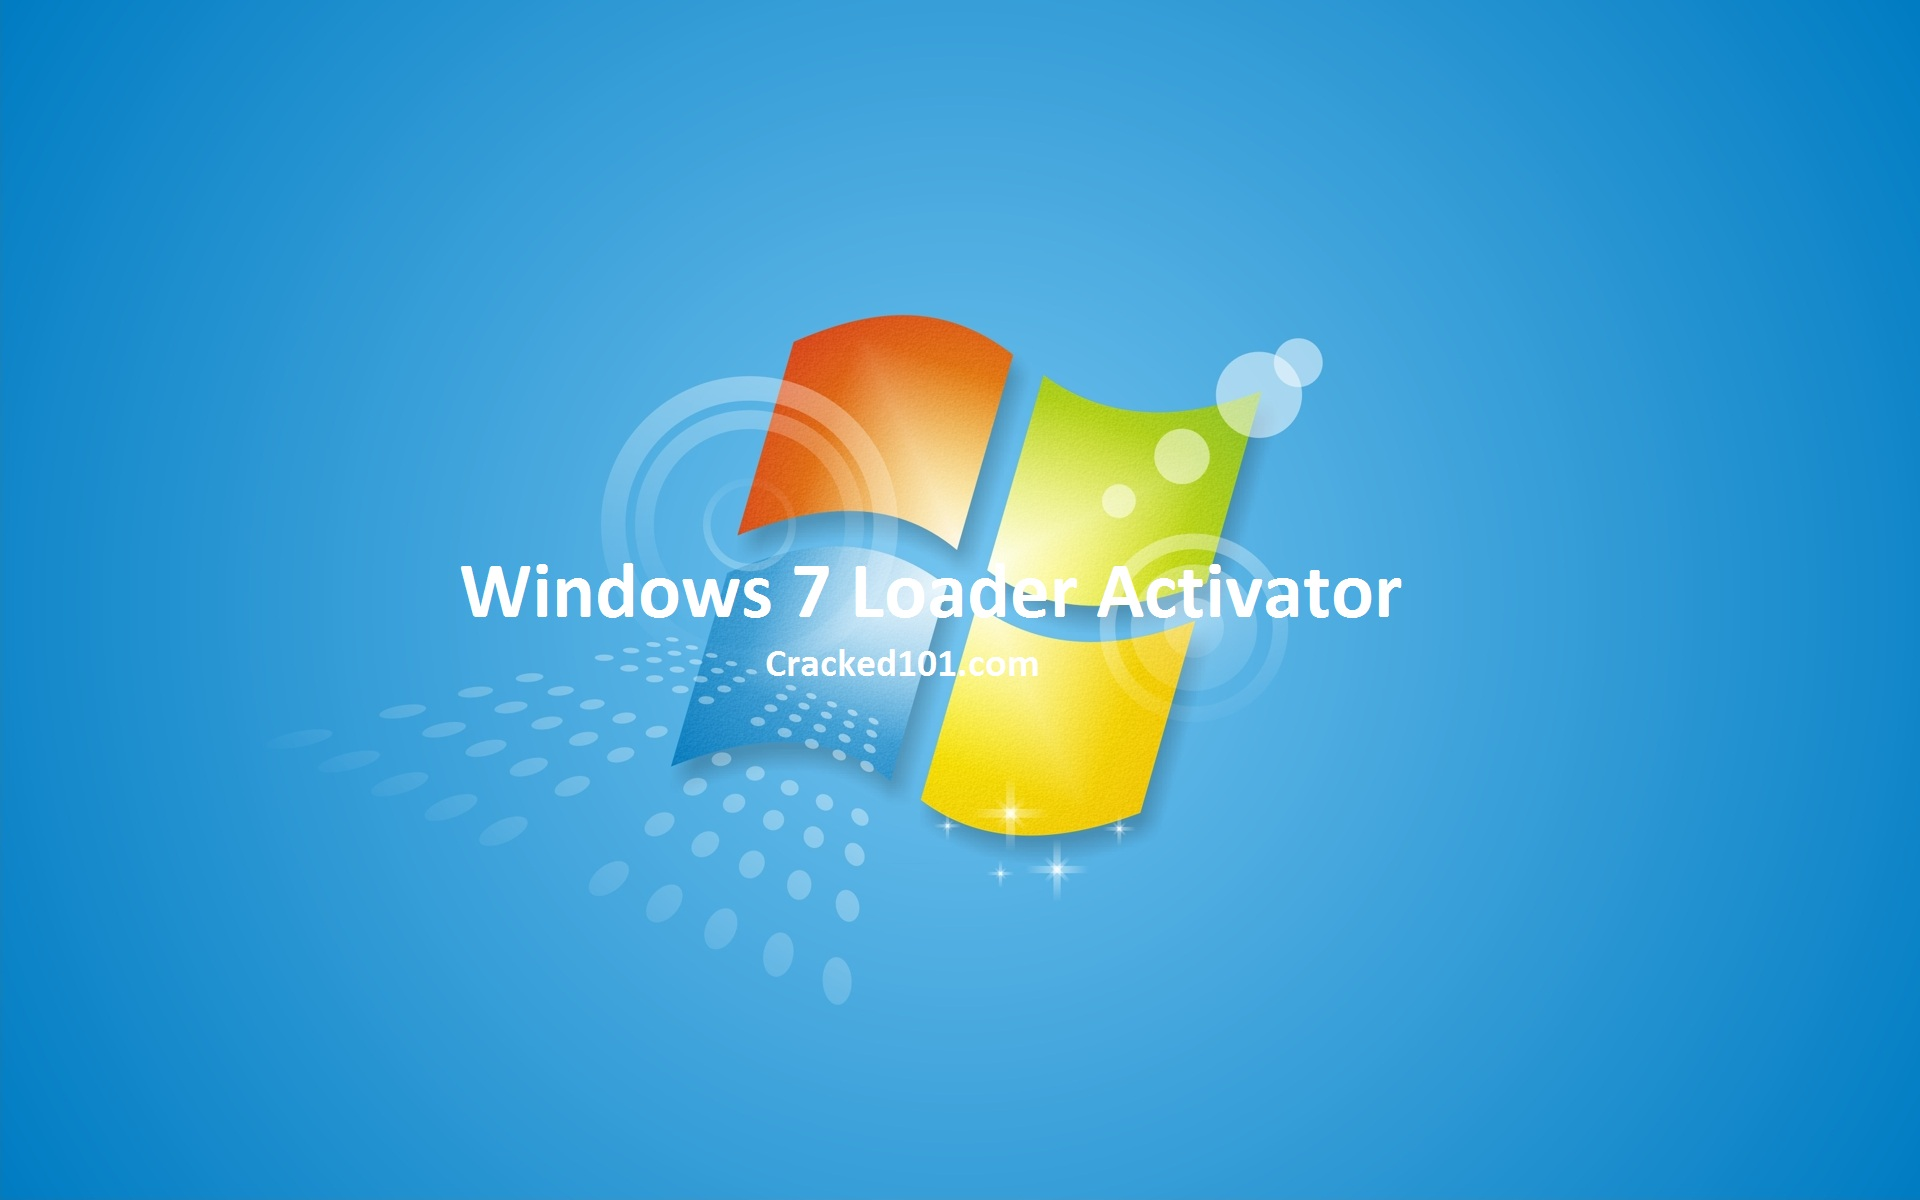 Windows 7 Loader Key